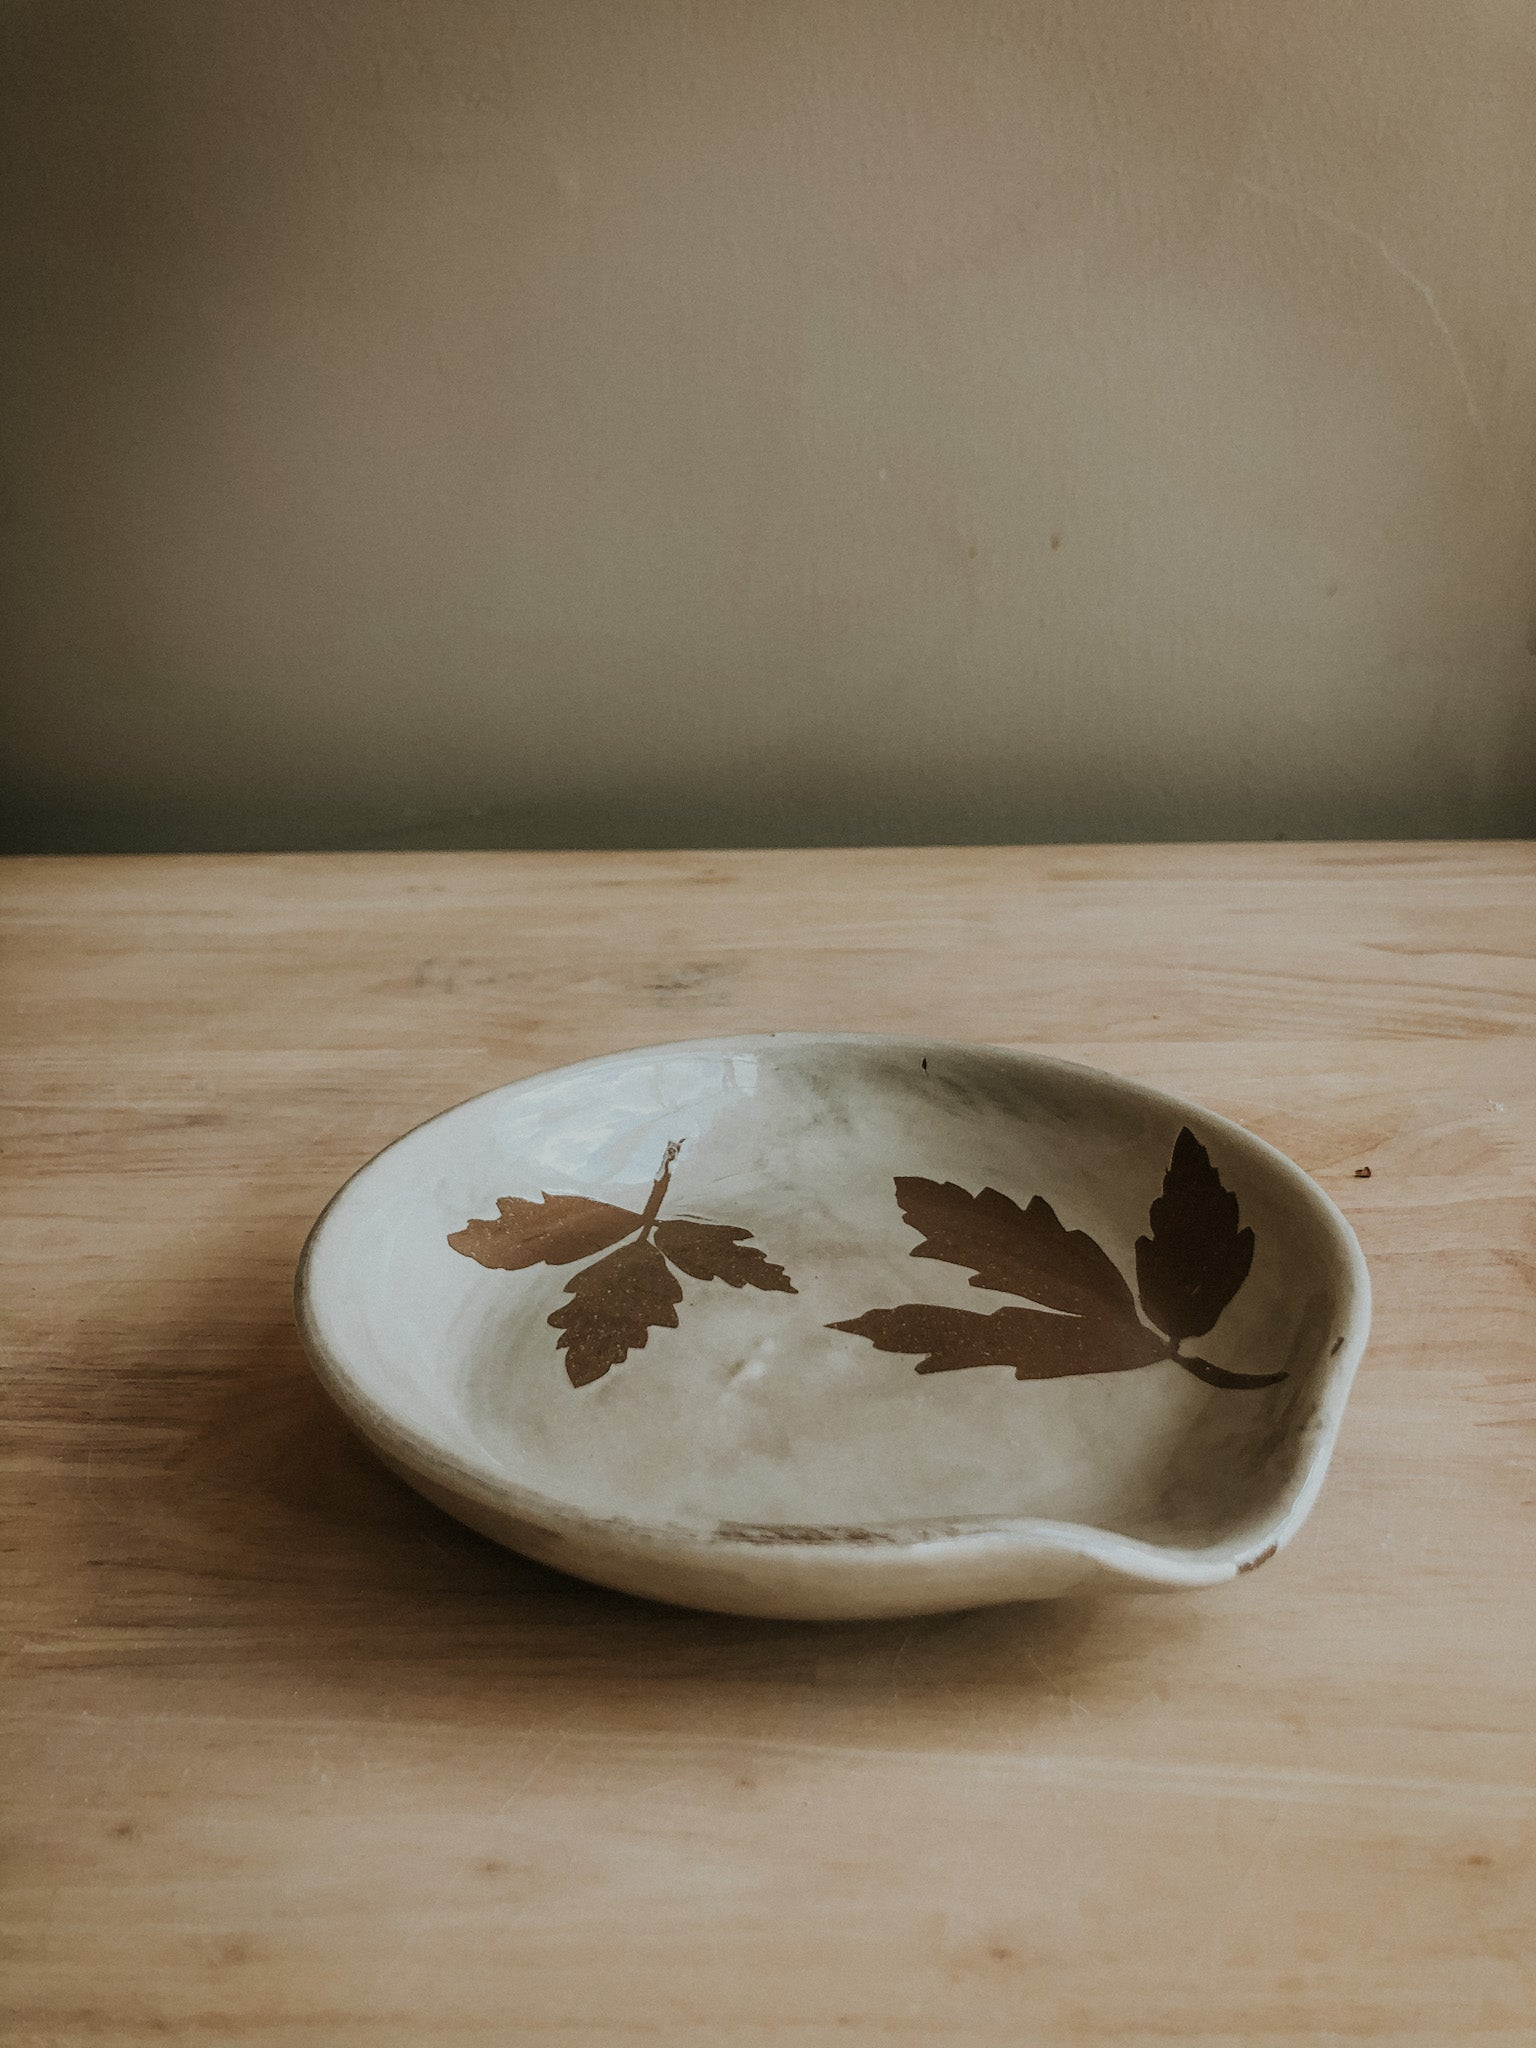 Stenciled Spoon Rest - Leaves